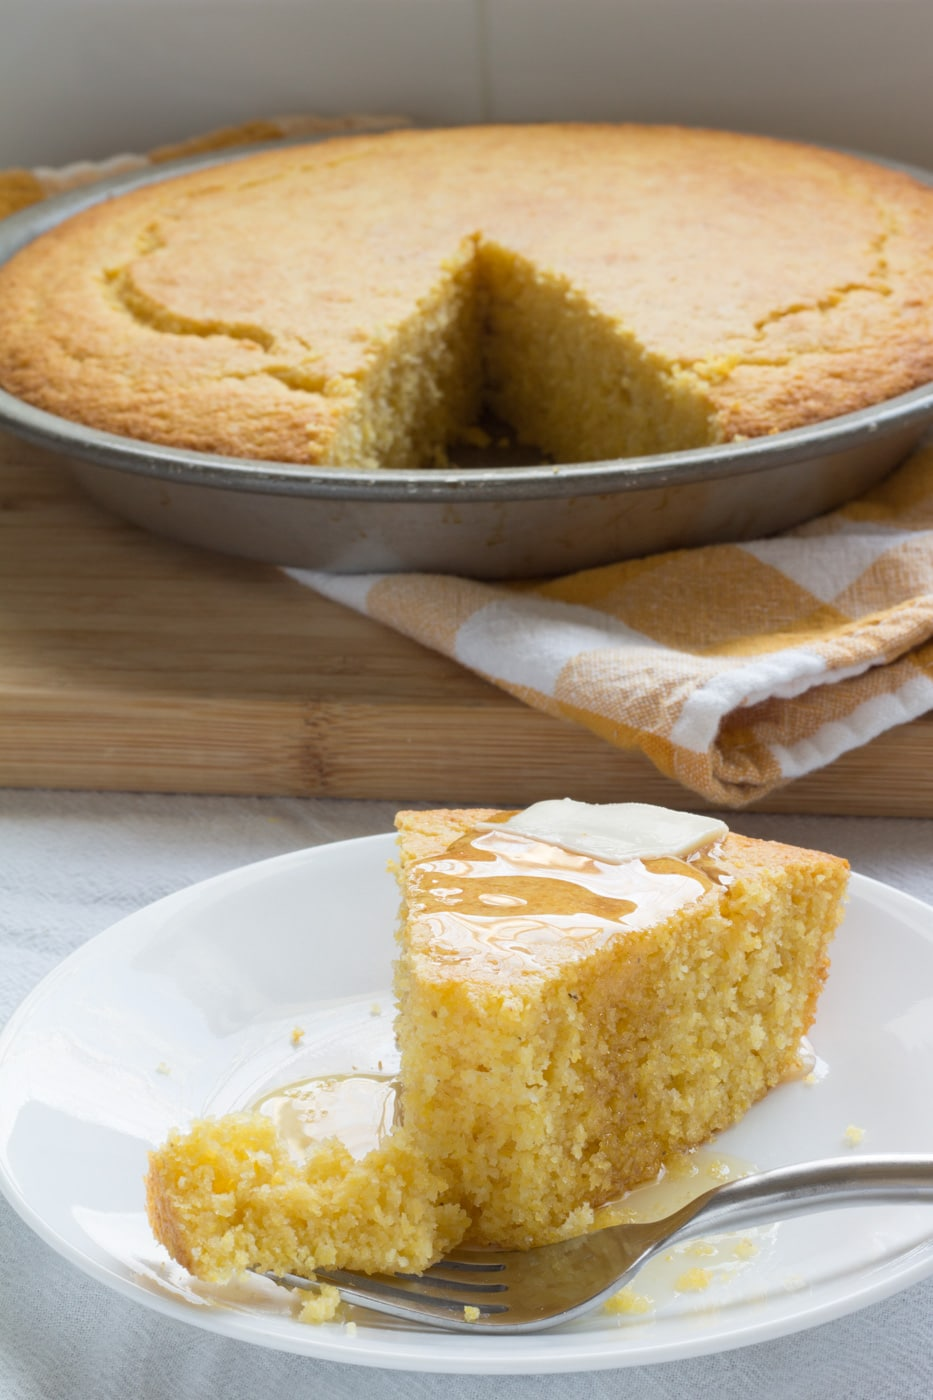 Sweet Southern Cornbread with butter and honey on a white plate with a fork and cornbread in a pie pan in the background